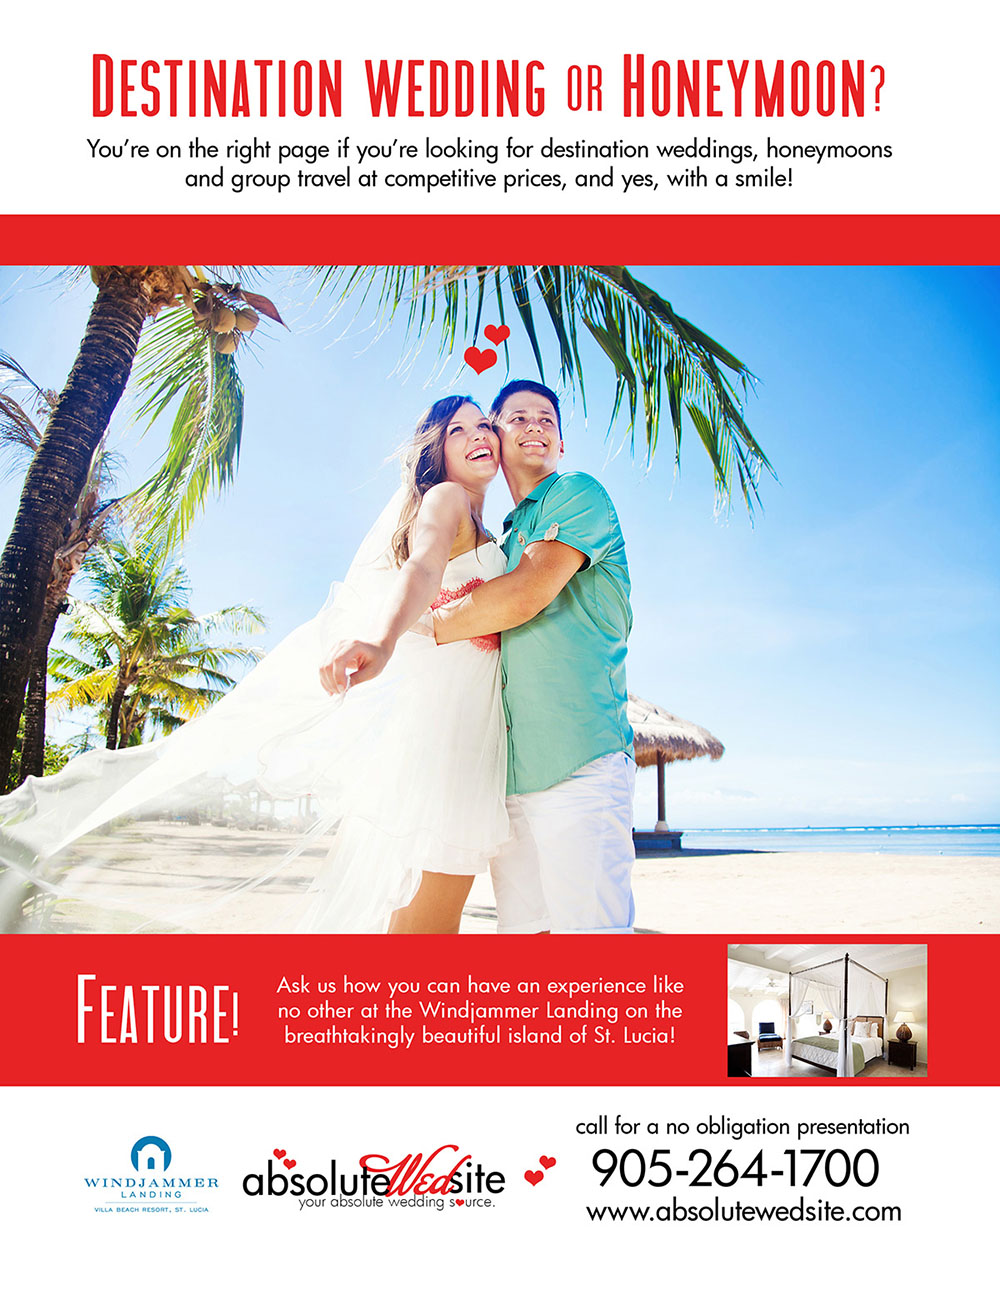 absolute wedsite destination weddings honeymoons located in toronto area